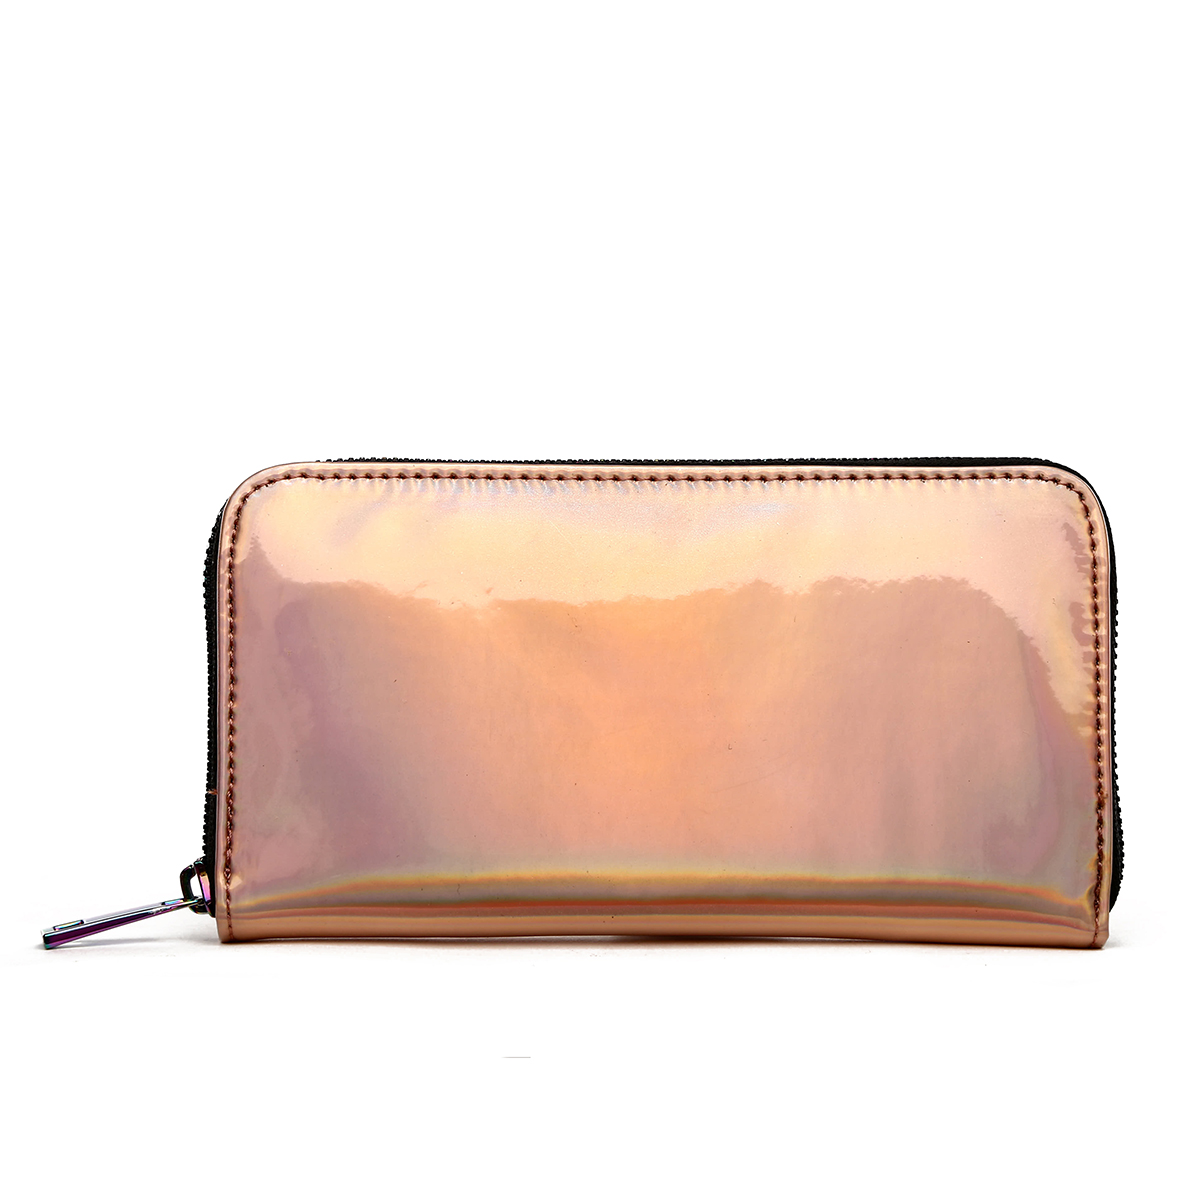 Hologram Zip Around Wallet with Rainbow Zipper Rose Gold